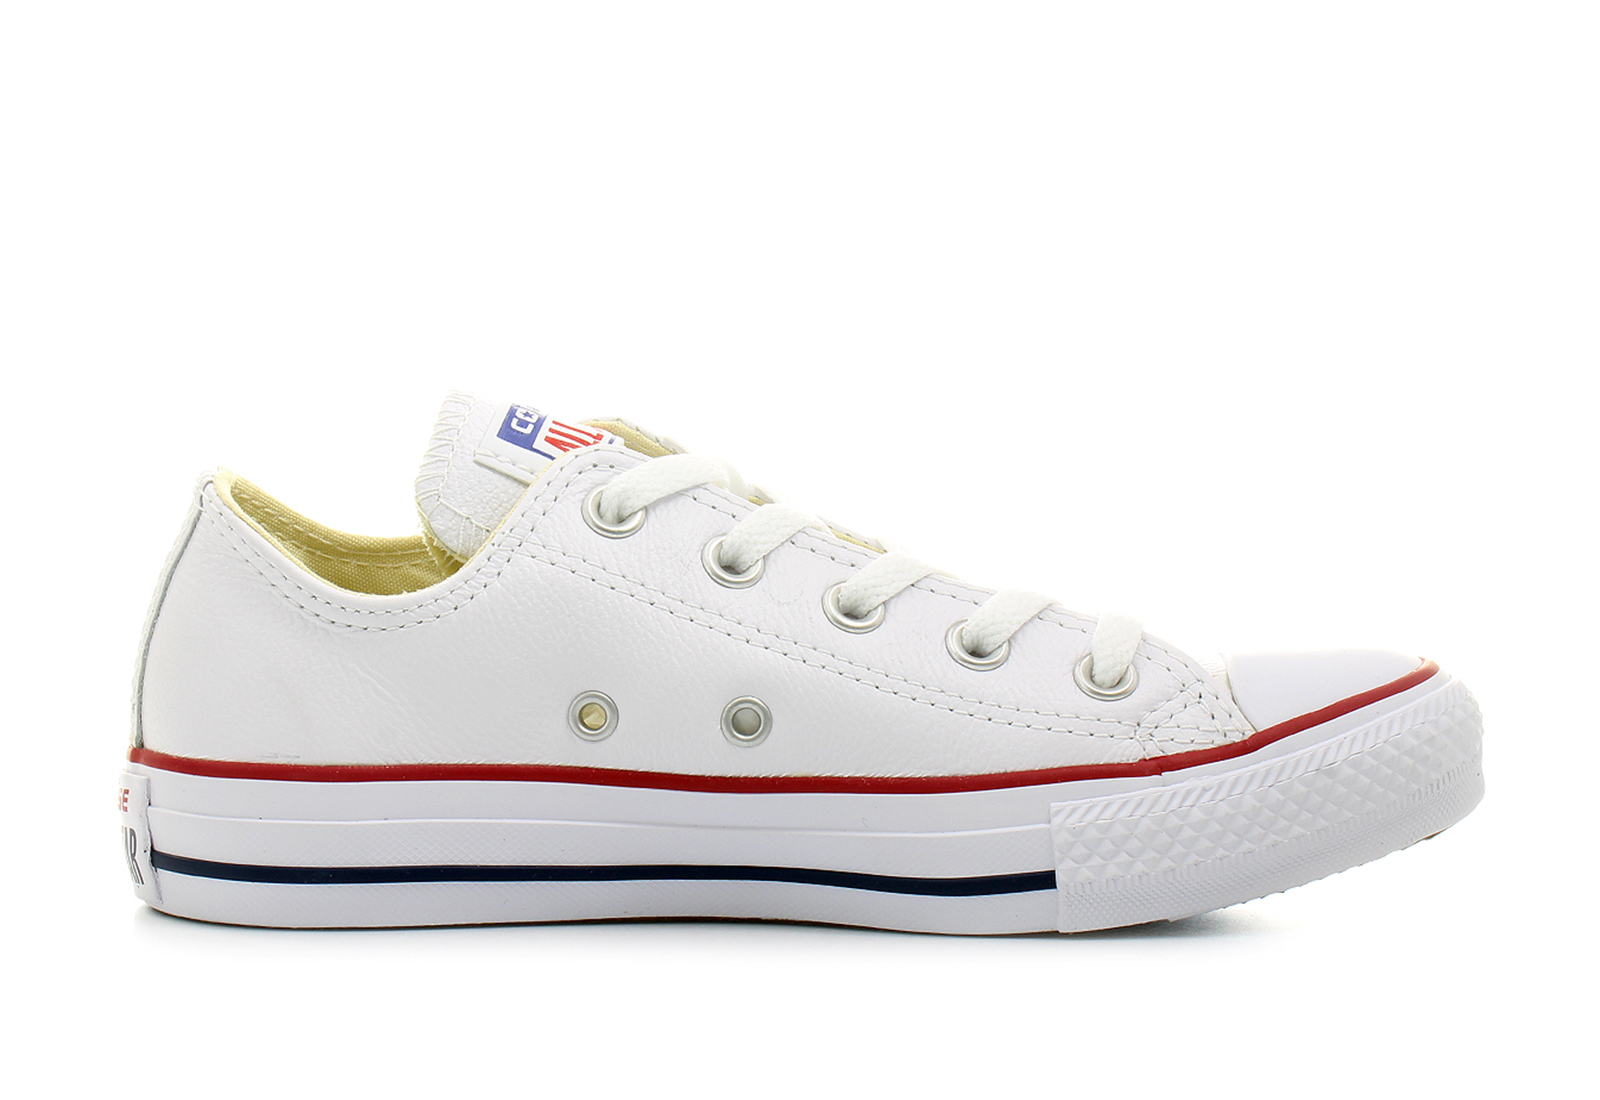 b367597e99c1 Converse Tornacipő - Ct As Core Leather Ox - 132173C - Office Shoes ...